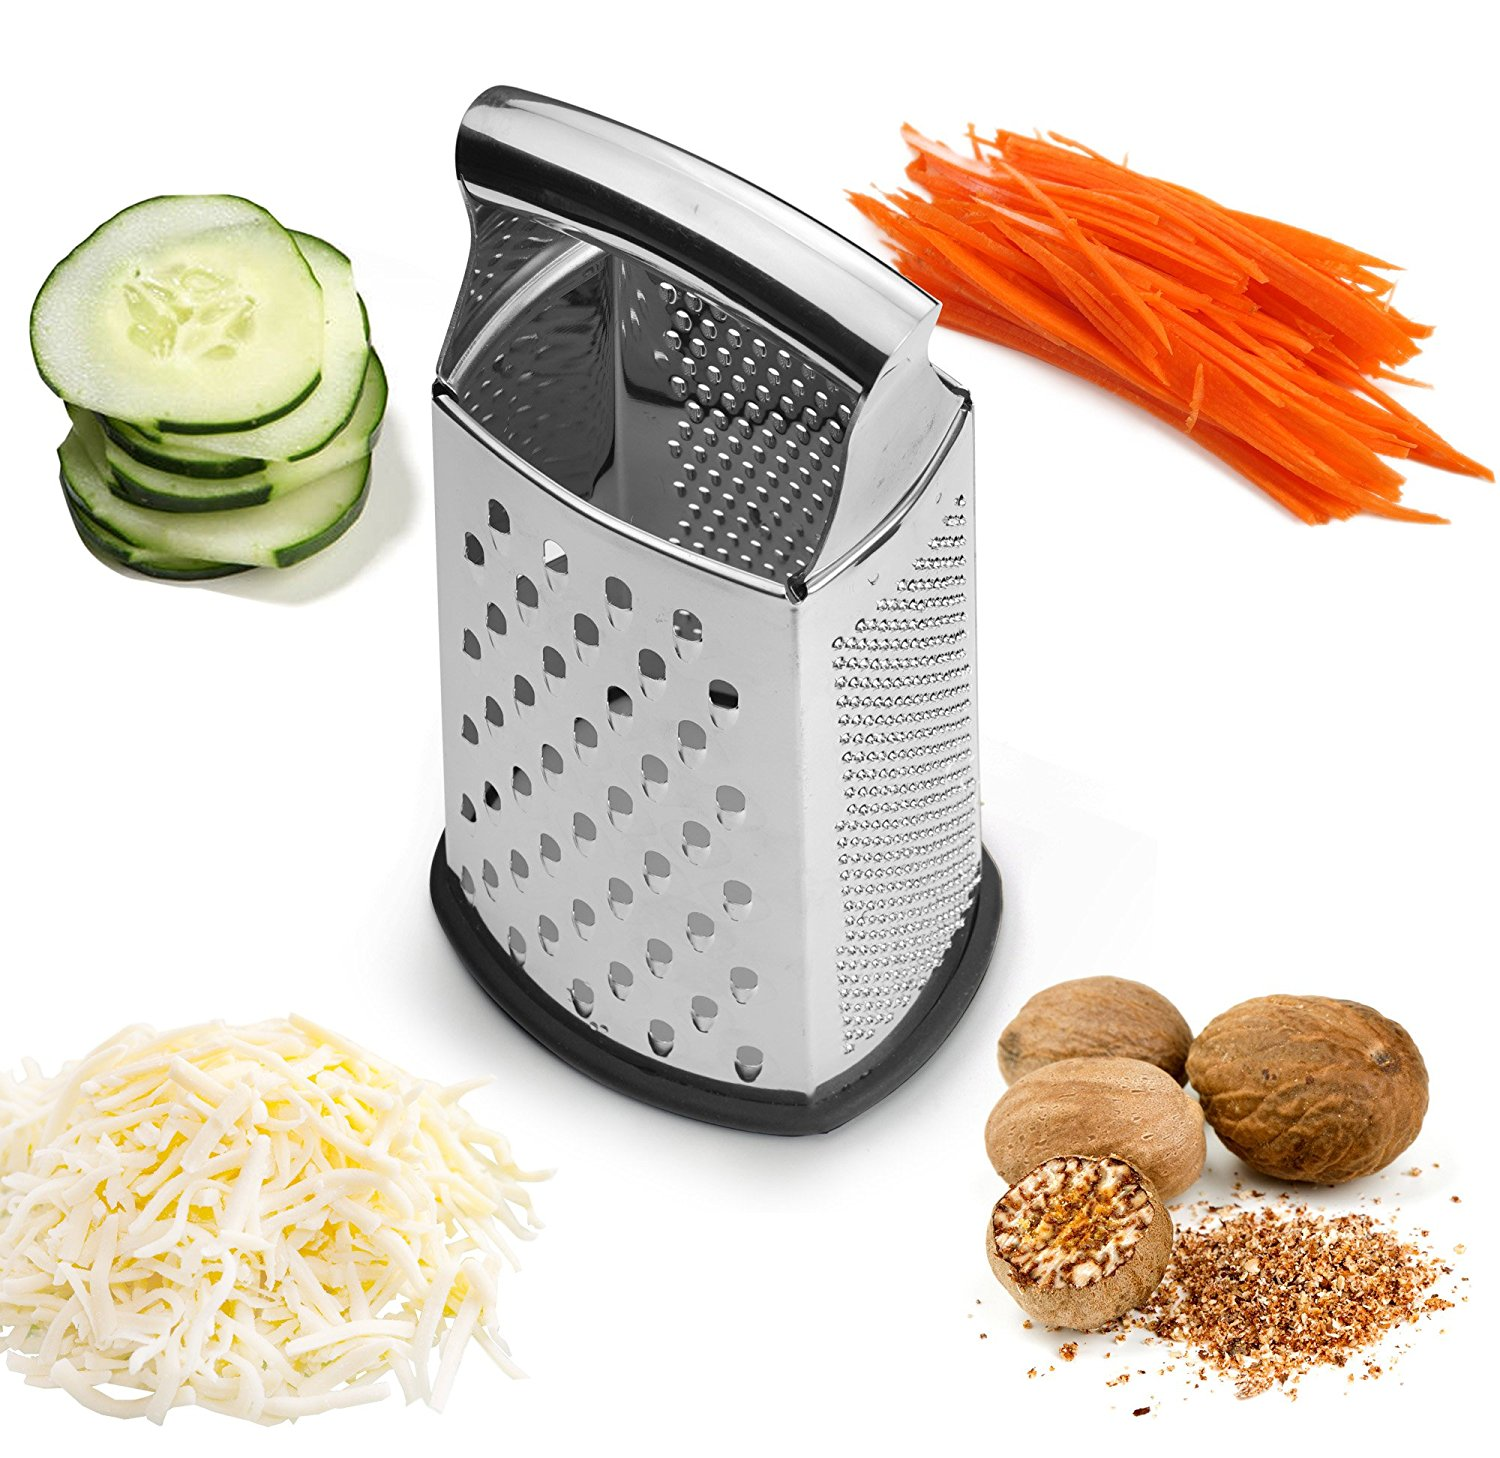 Spring Chef Professional Box Grater with 4 Grating Surfaces